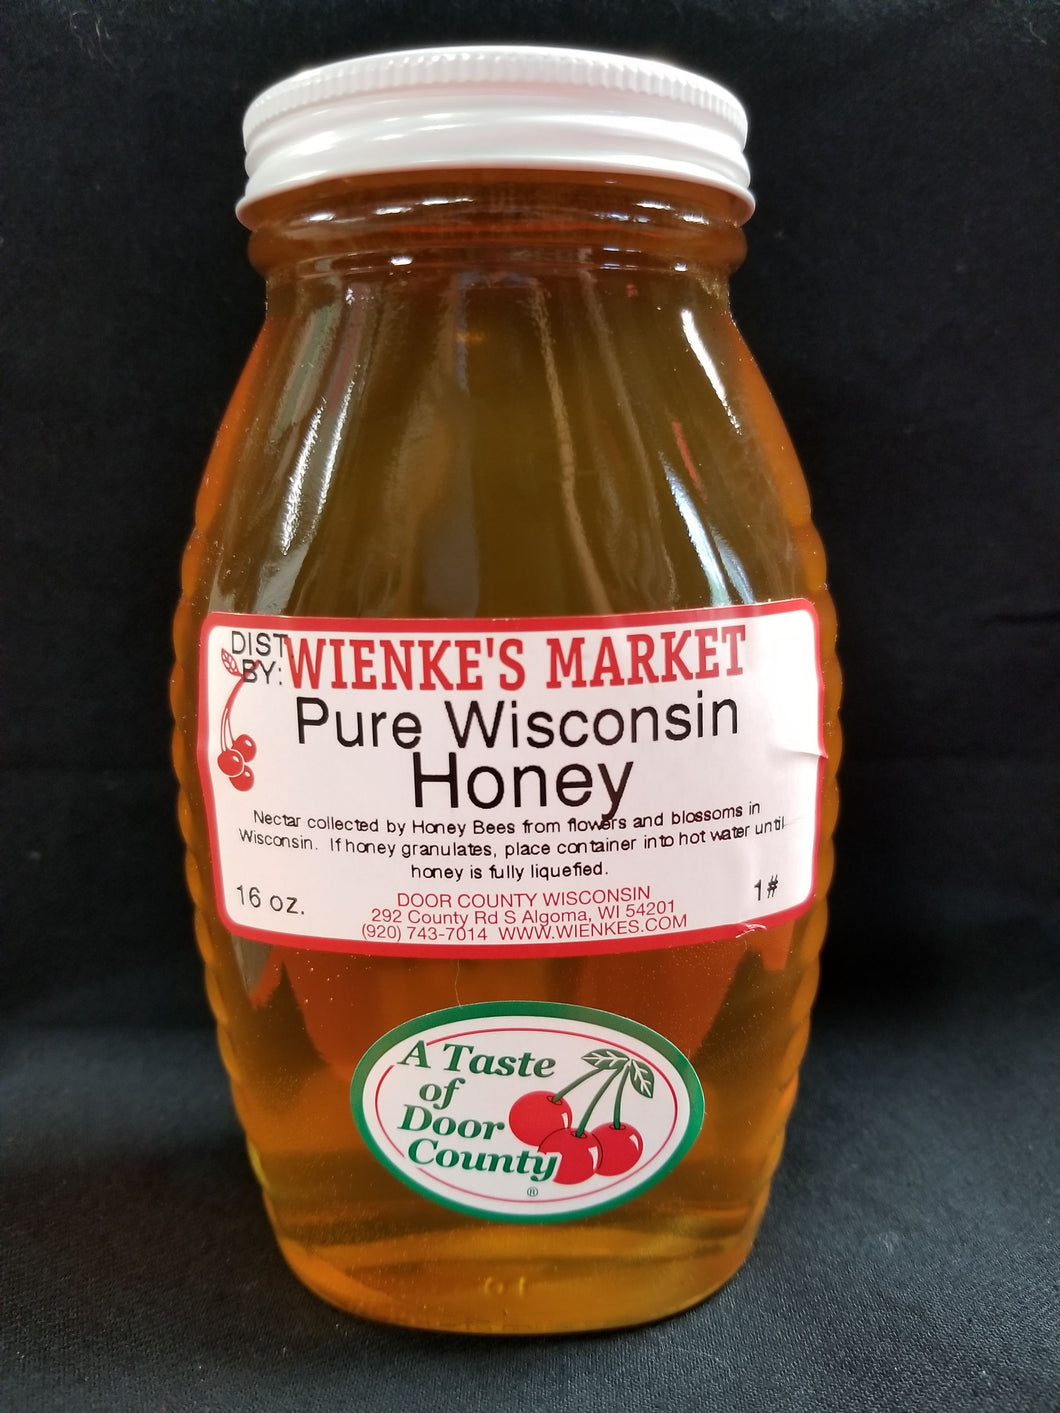 #1 Glass Honey Jar(16.oz)